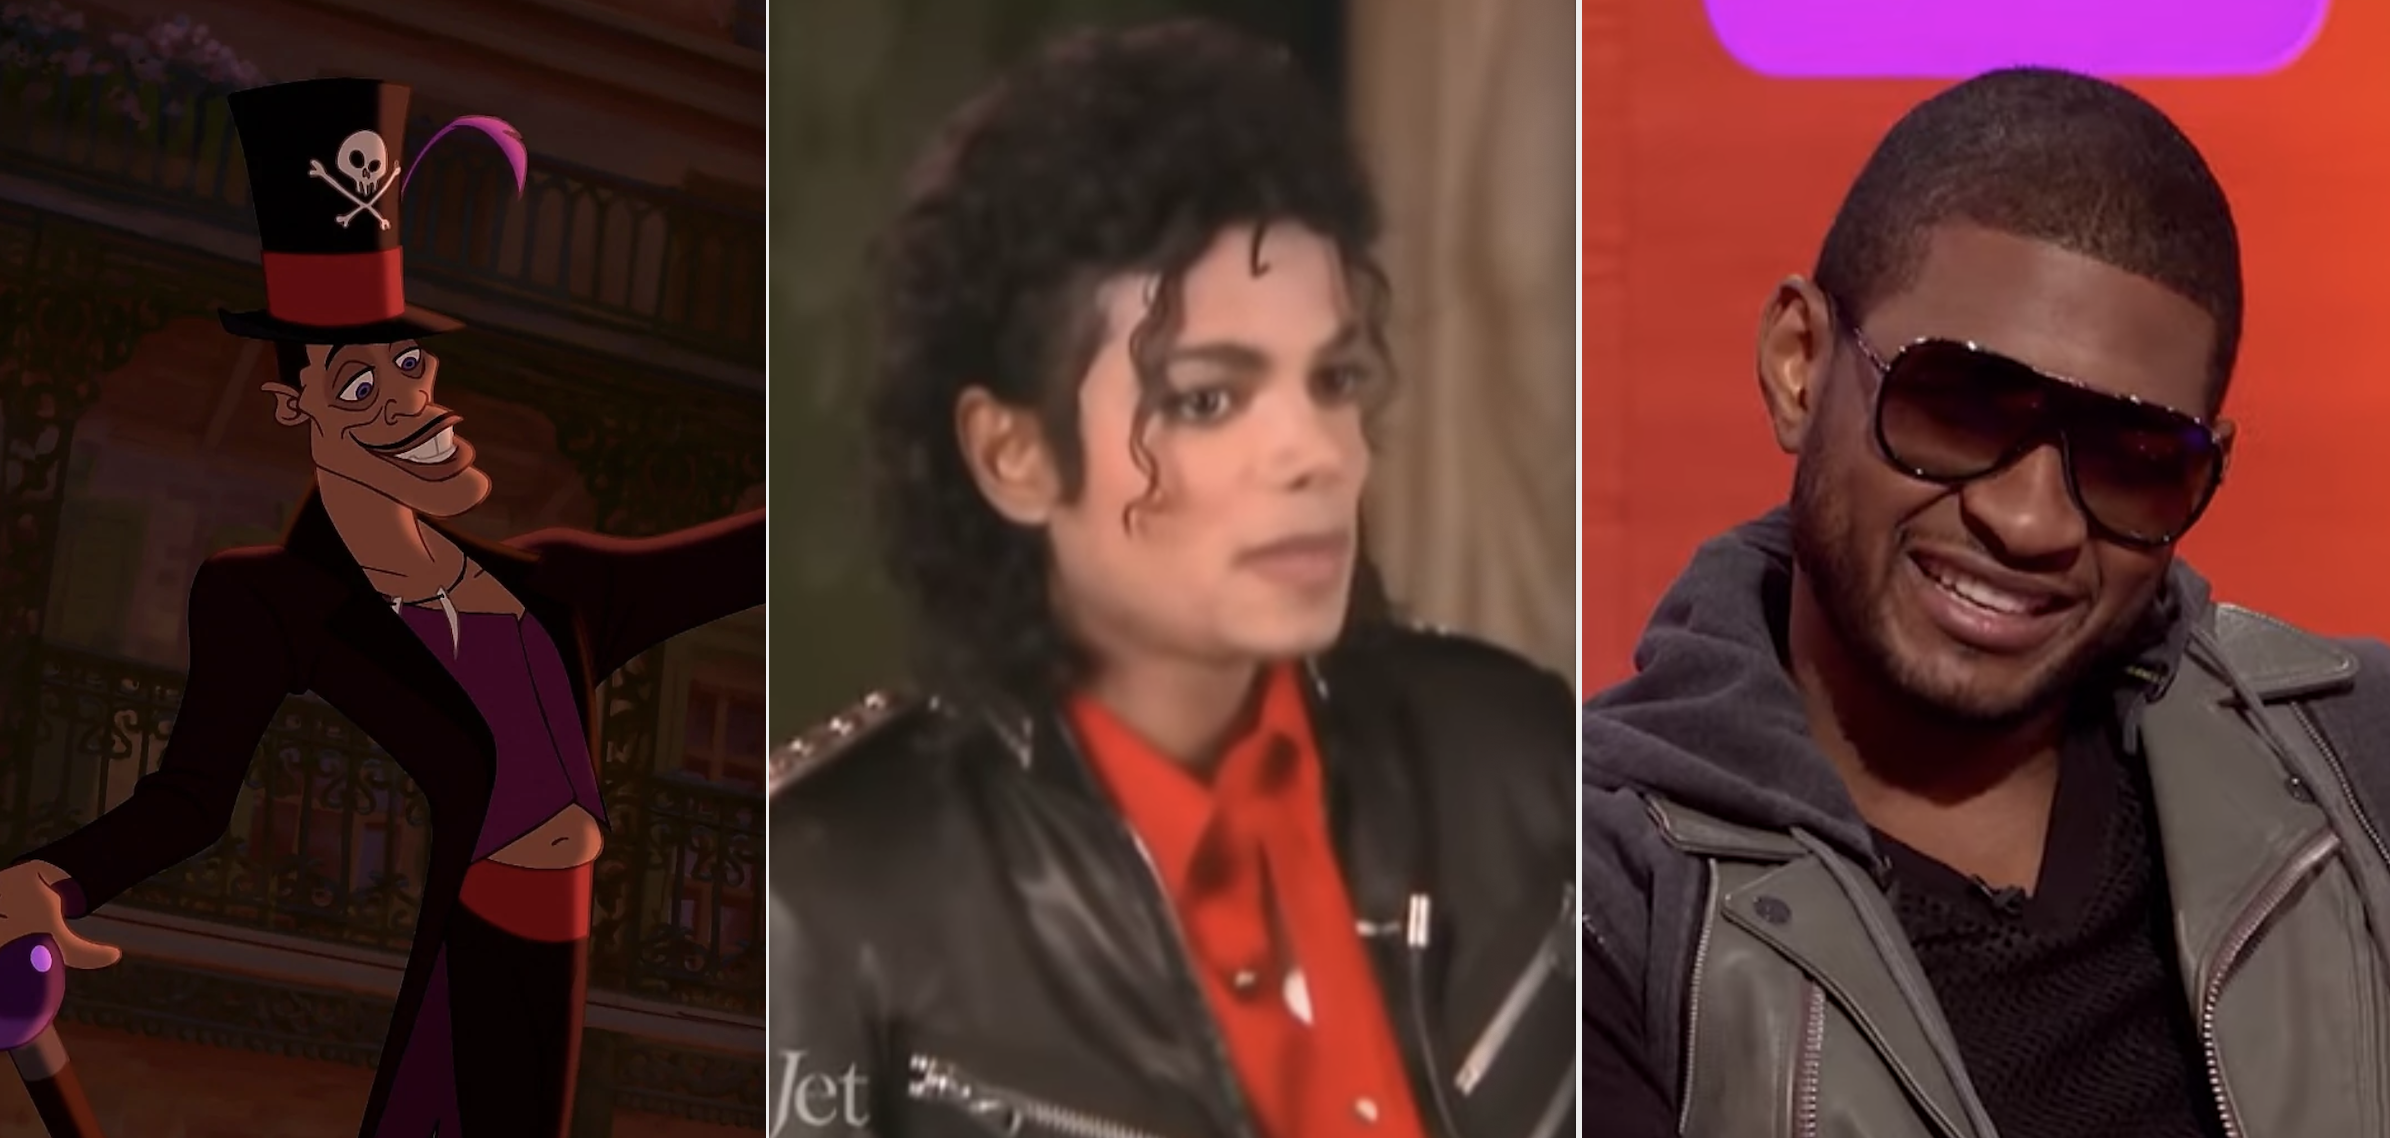 Side-by-sides of Dr. Facilier, Michael Jackson, and Usher